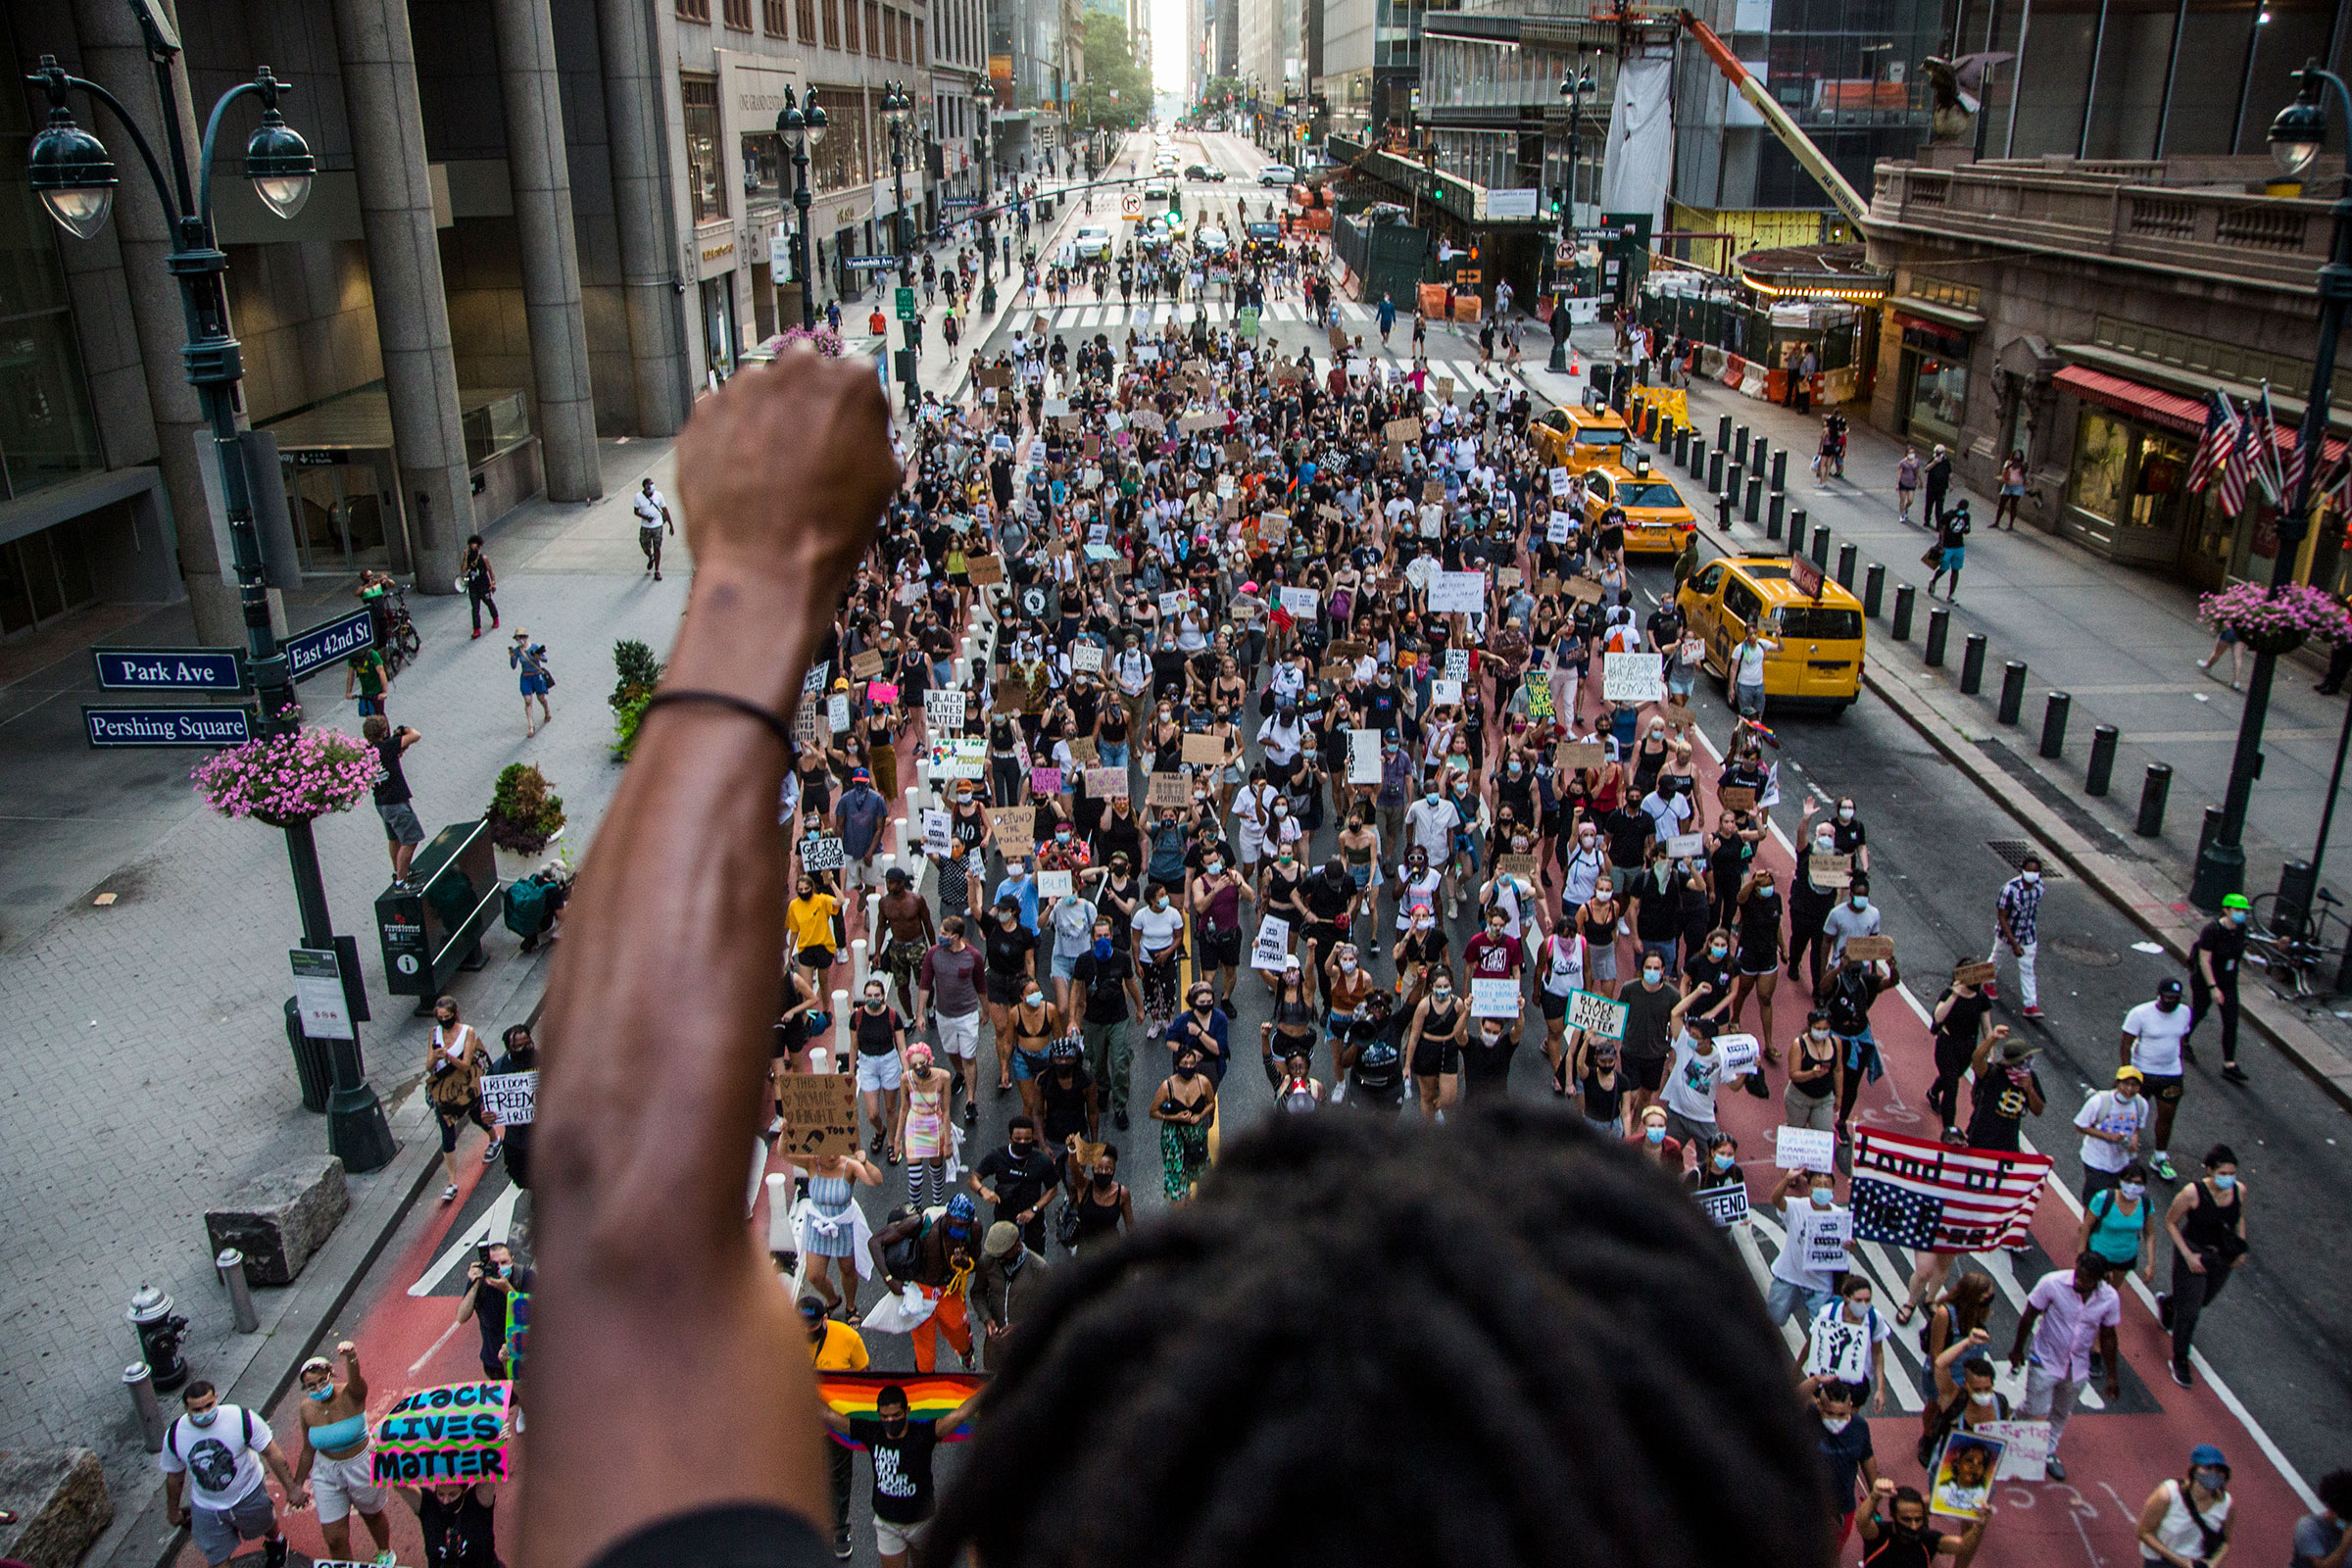 A man raises his arm in support of the crowd of protesters marching in downtown New York, NY on July 26, 2020.